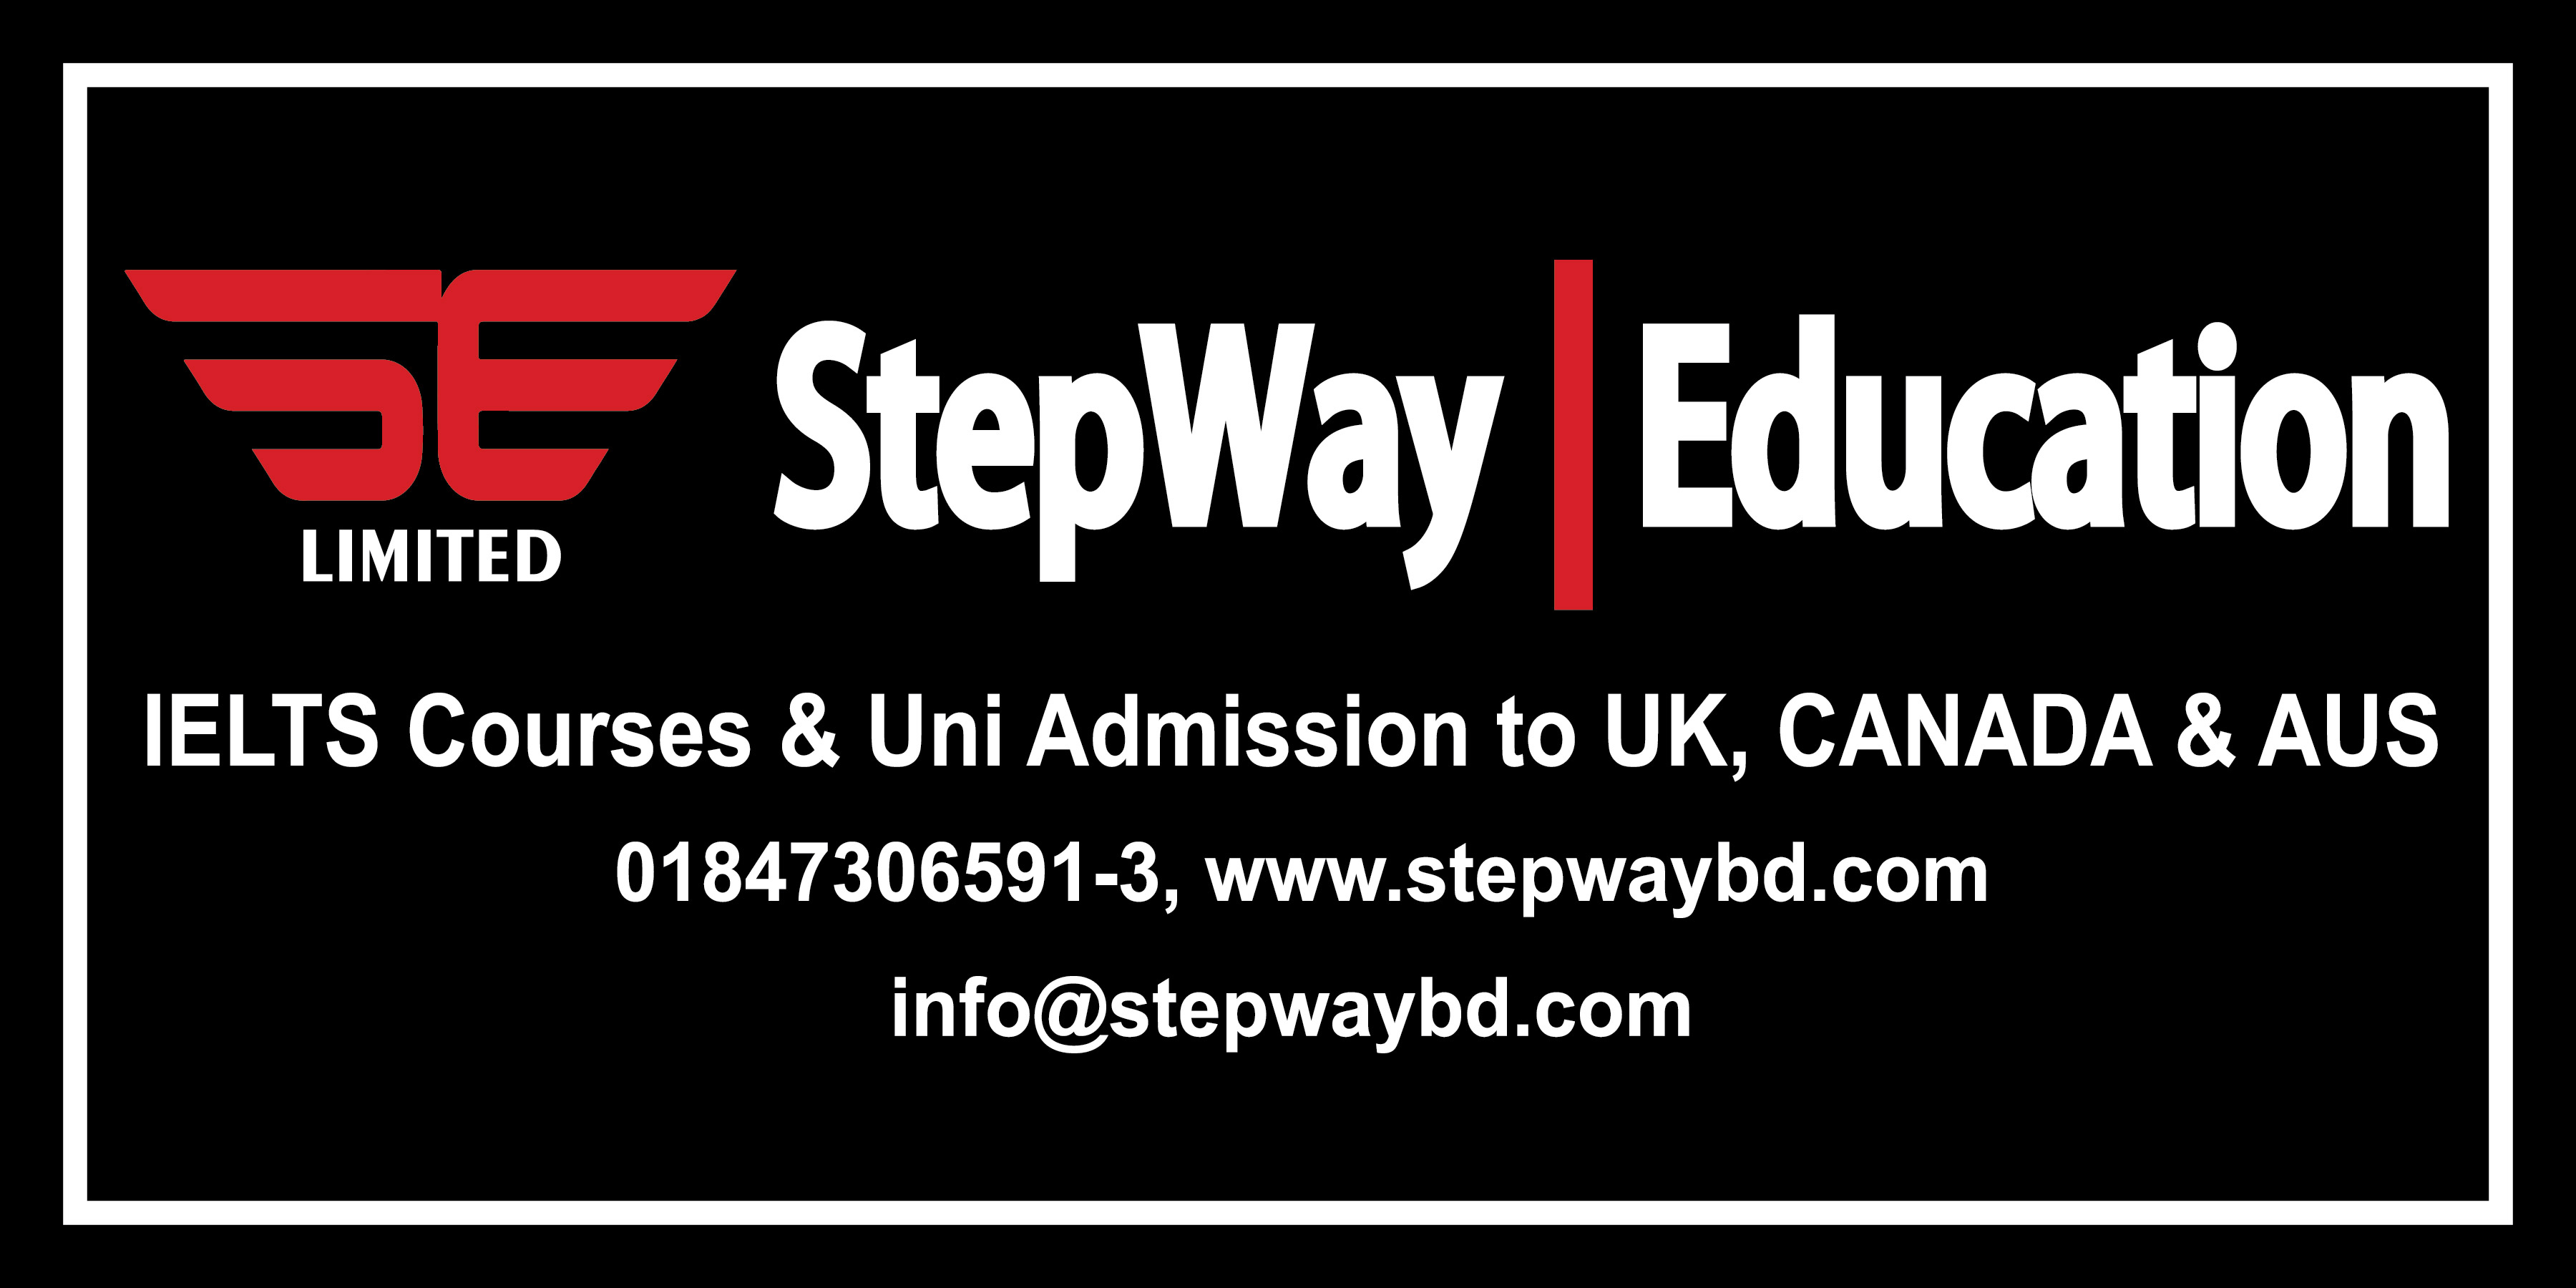 Stepway Education IELTS & Study abroad